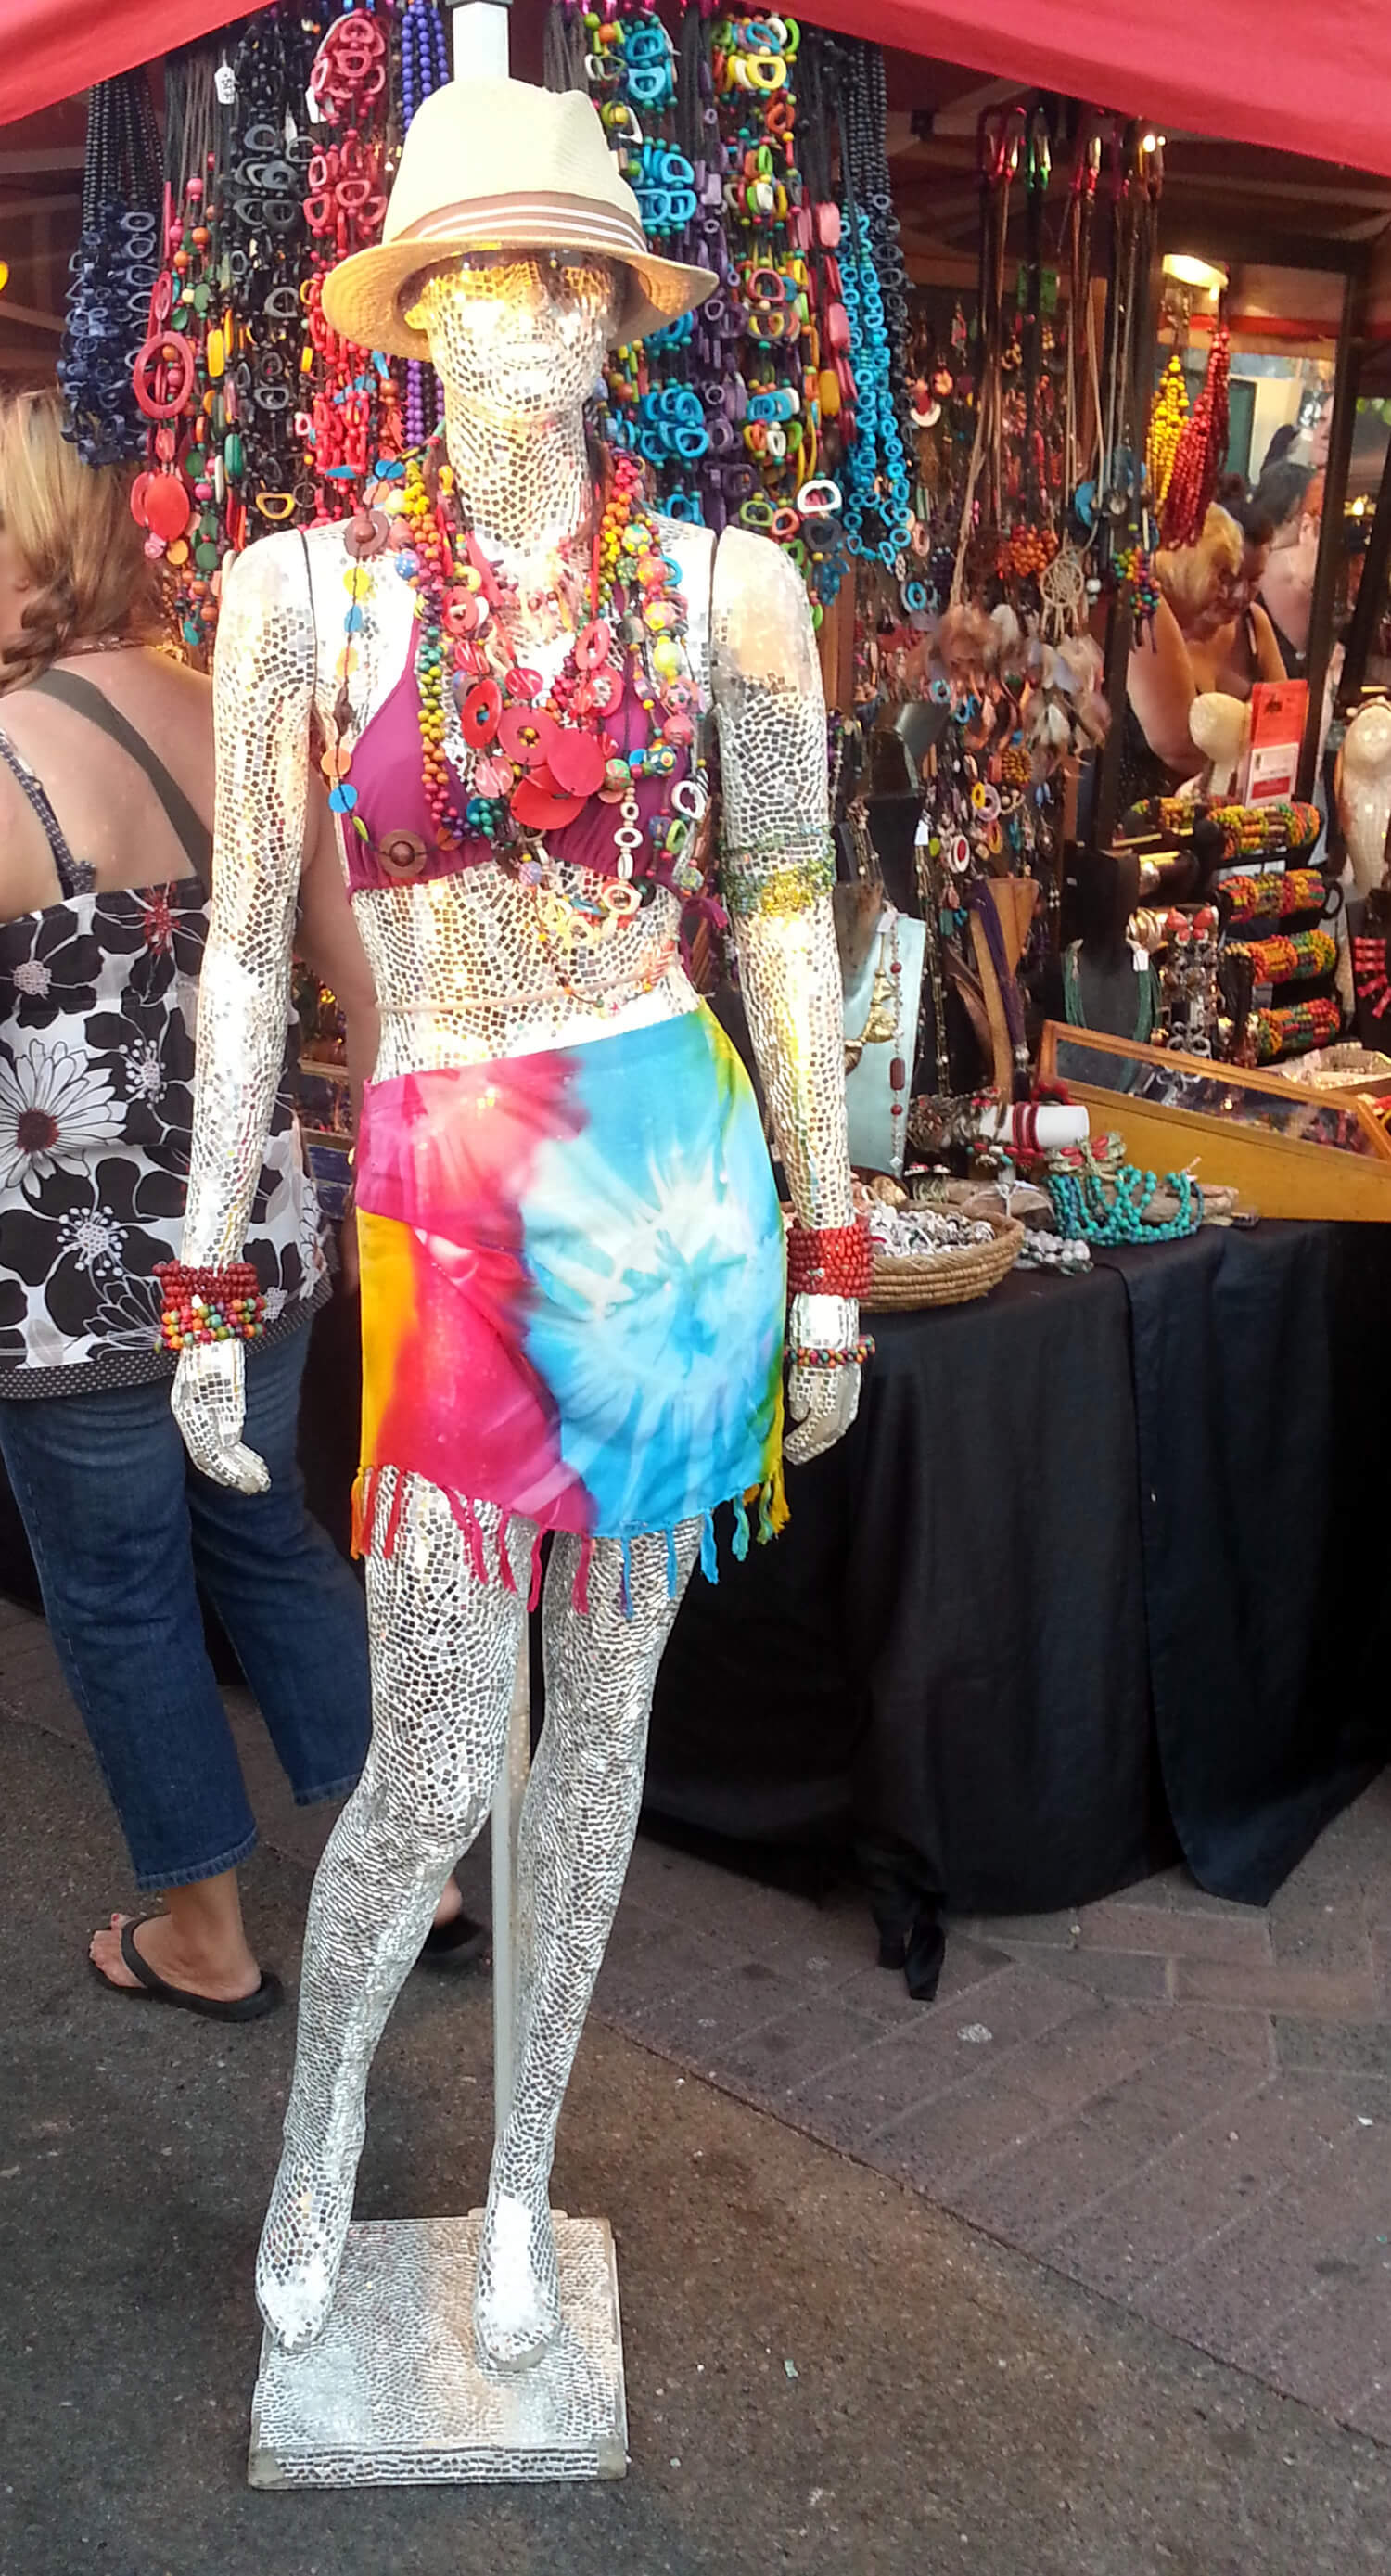 Photo of a market stall at Mindil Market in Darwin showing a hippy mannequin dressed in tie-dyed outfit and lots of jewellery